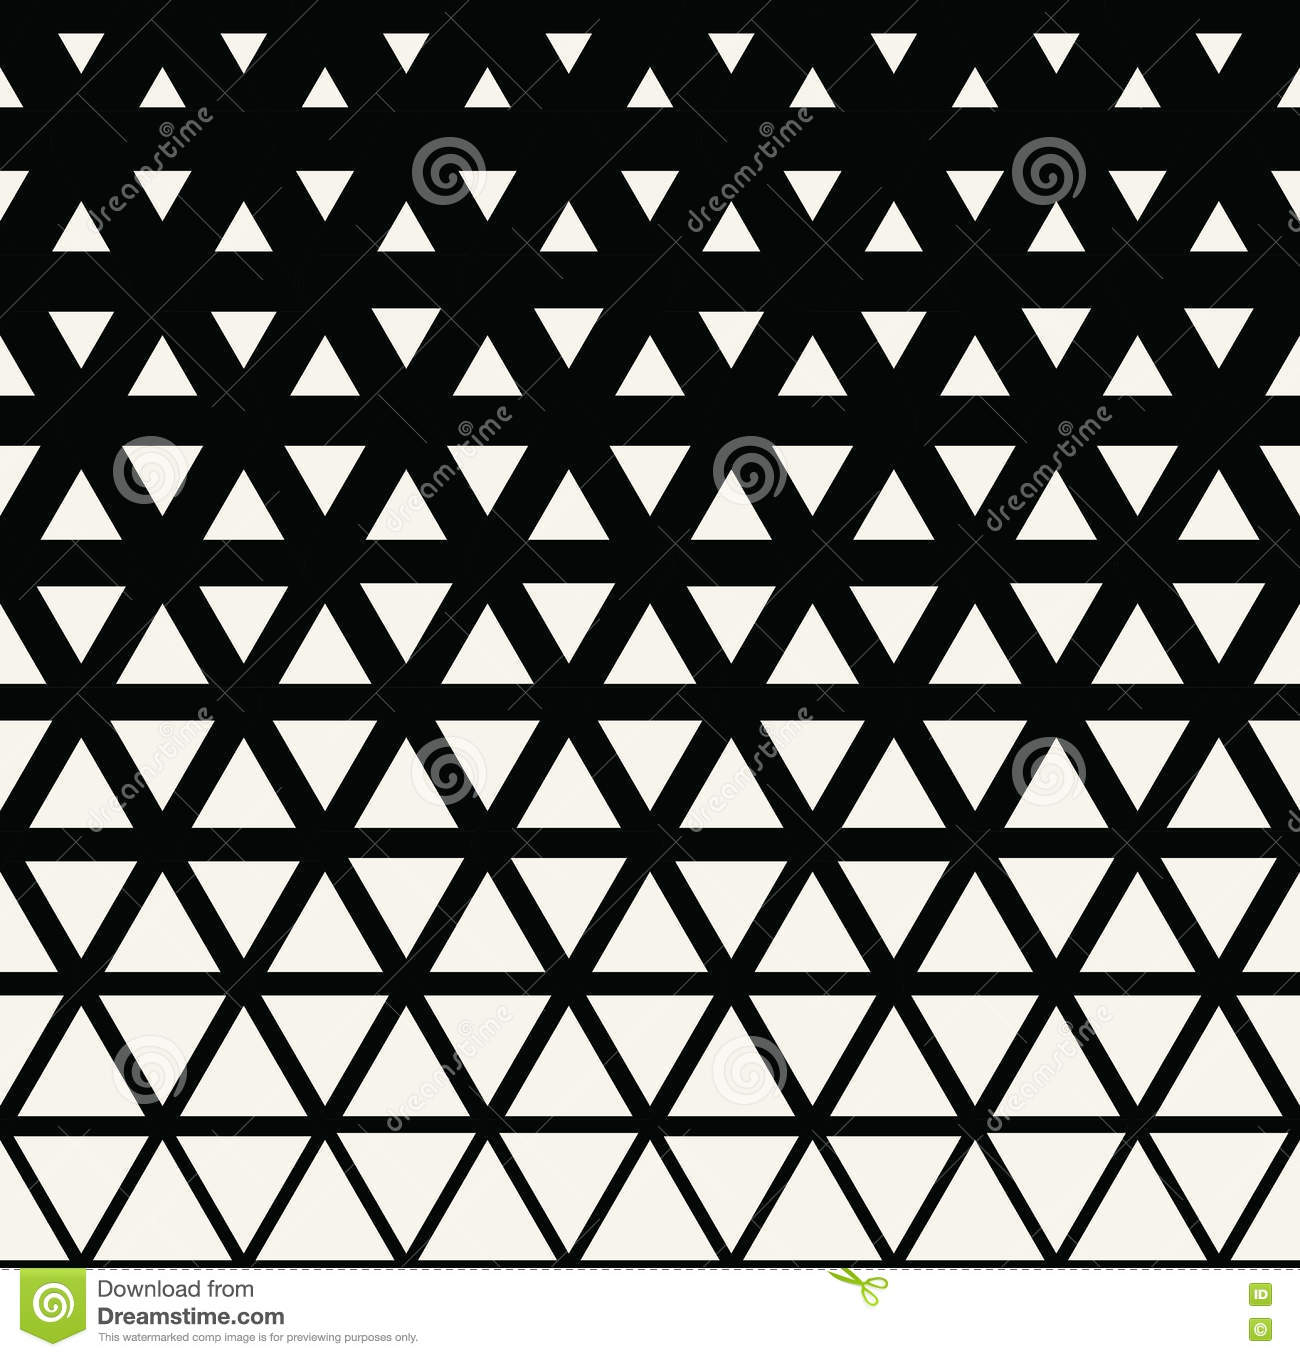 abstract geometric black and white graphic design triangle